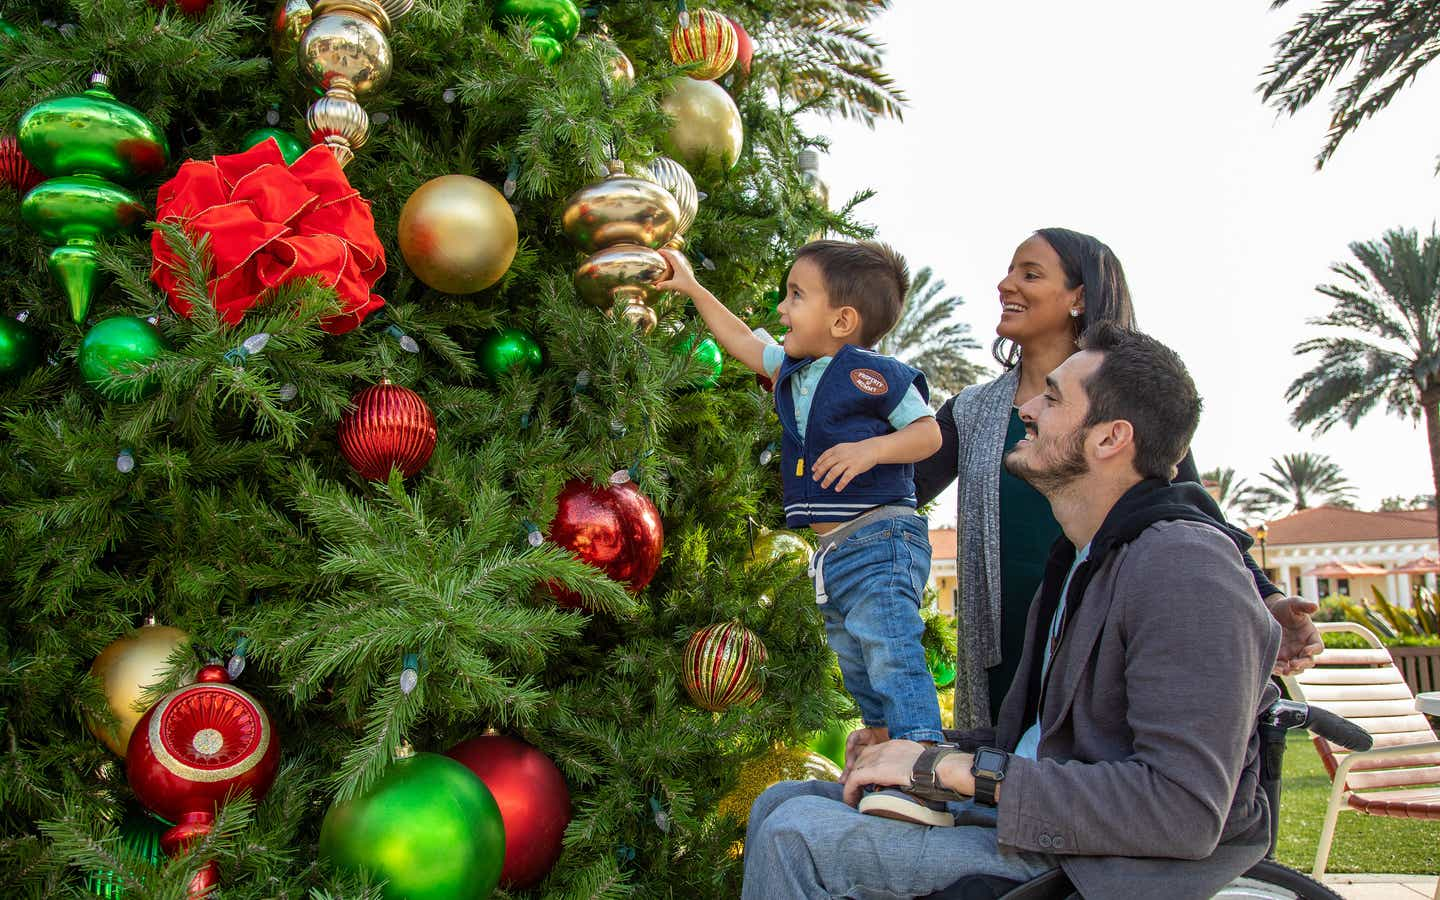 Author, Danny Pitaluga (right) sits in his black wheelchair wearing a charcoal hoodie as his wife, Val (middle), and his son, Joey (left), stands on Danny's lap to decorate a Christmas tree outdoors.